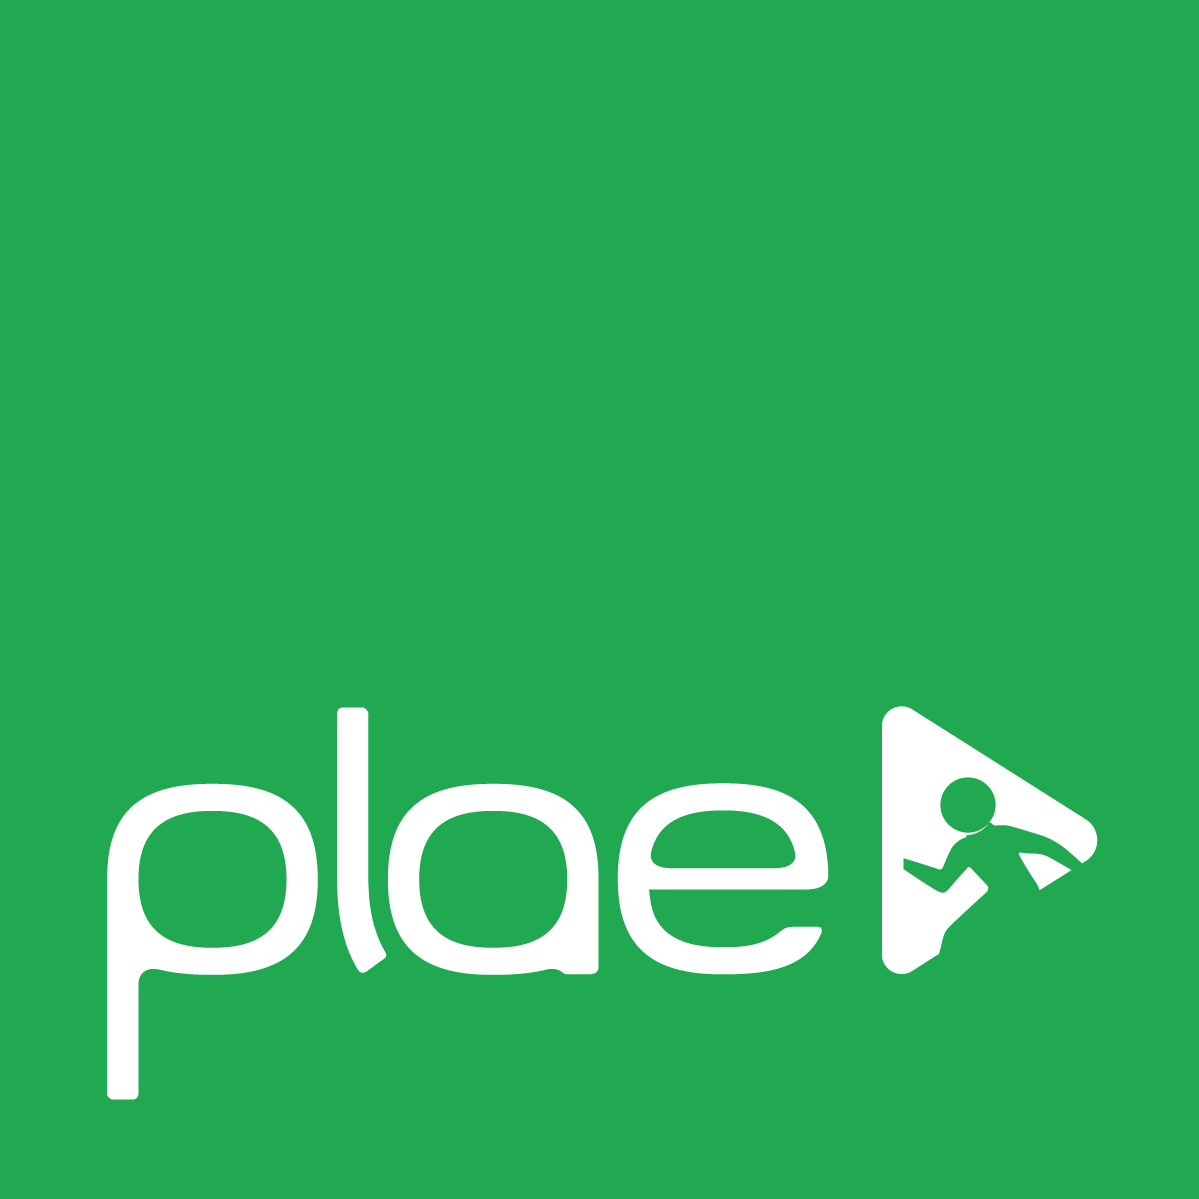 Plae - Premium products that can handle all the things kids dish out on a daily basisMade from eco-friendly, breathable, and washable materials that are engineered to be durable, flexible, and customizable to allow for the natural development of children's feet.